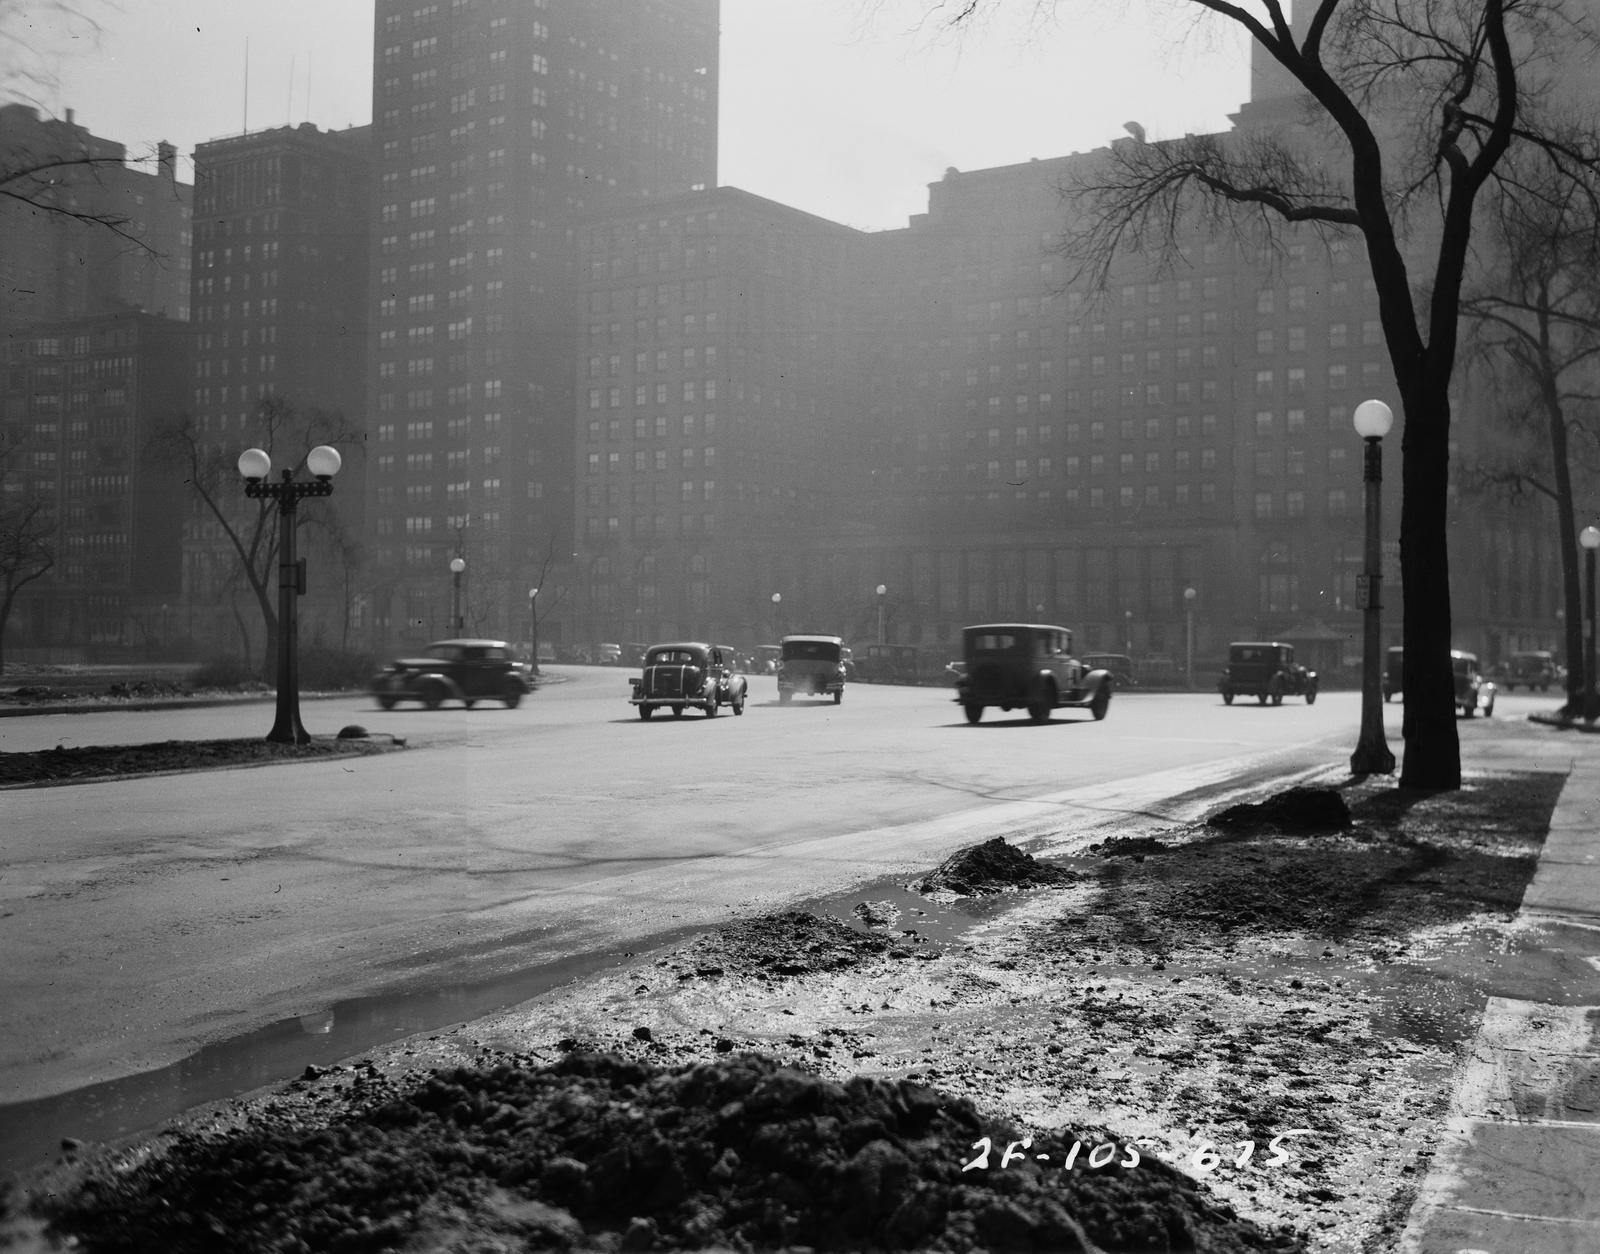 Traffic Intersection at Lake Shore Drive and Bellevue Place (image 01)